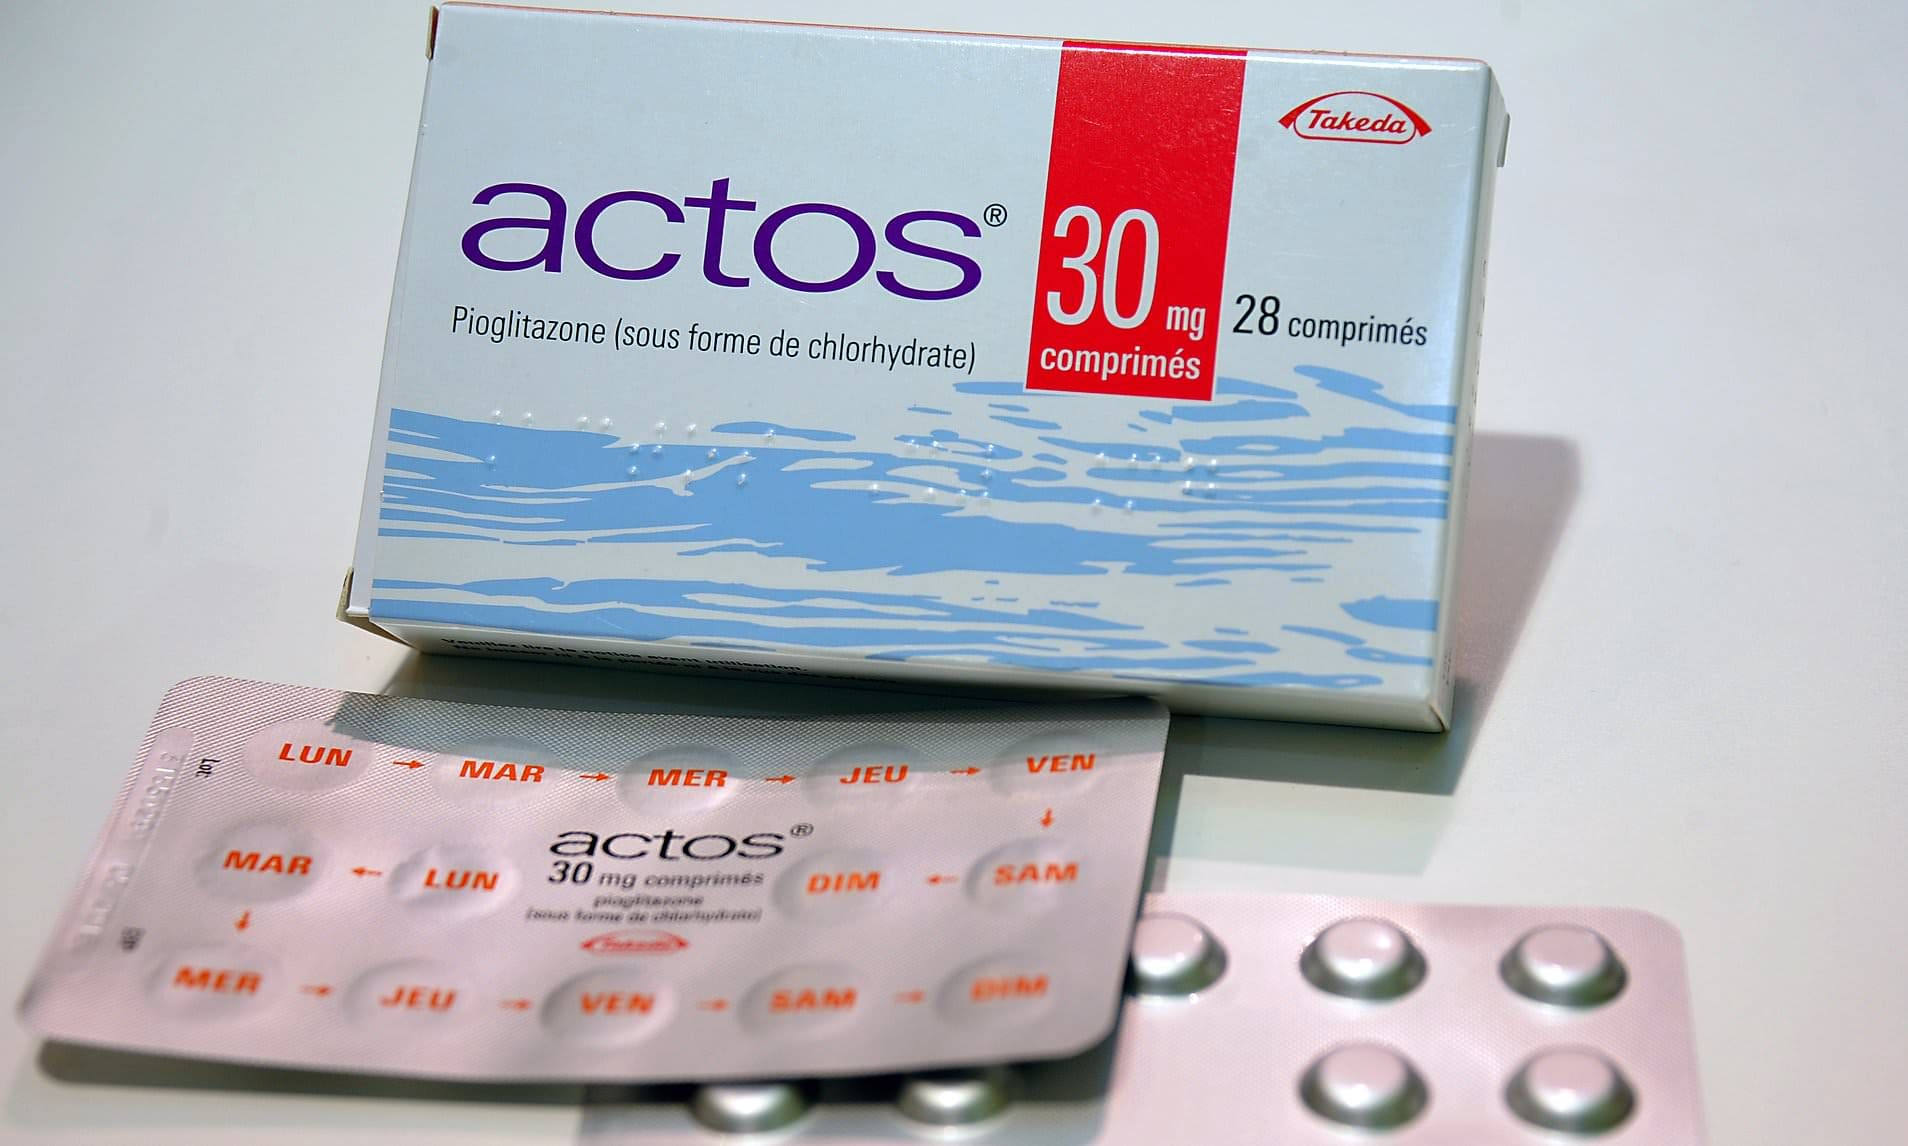 All you need to know about Actos